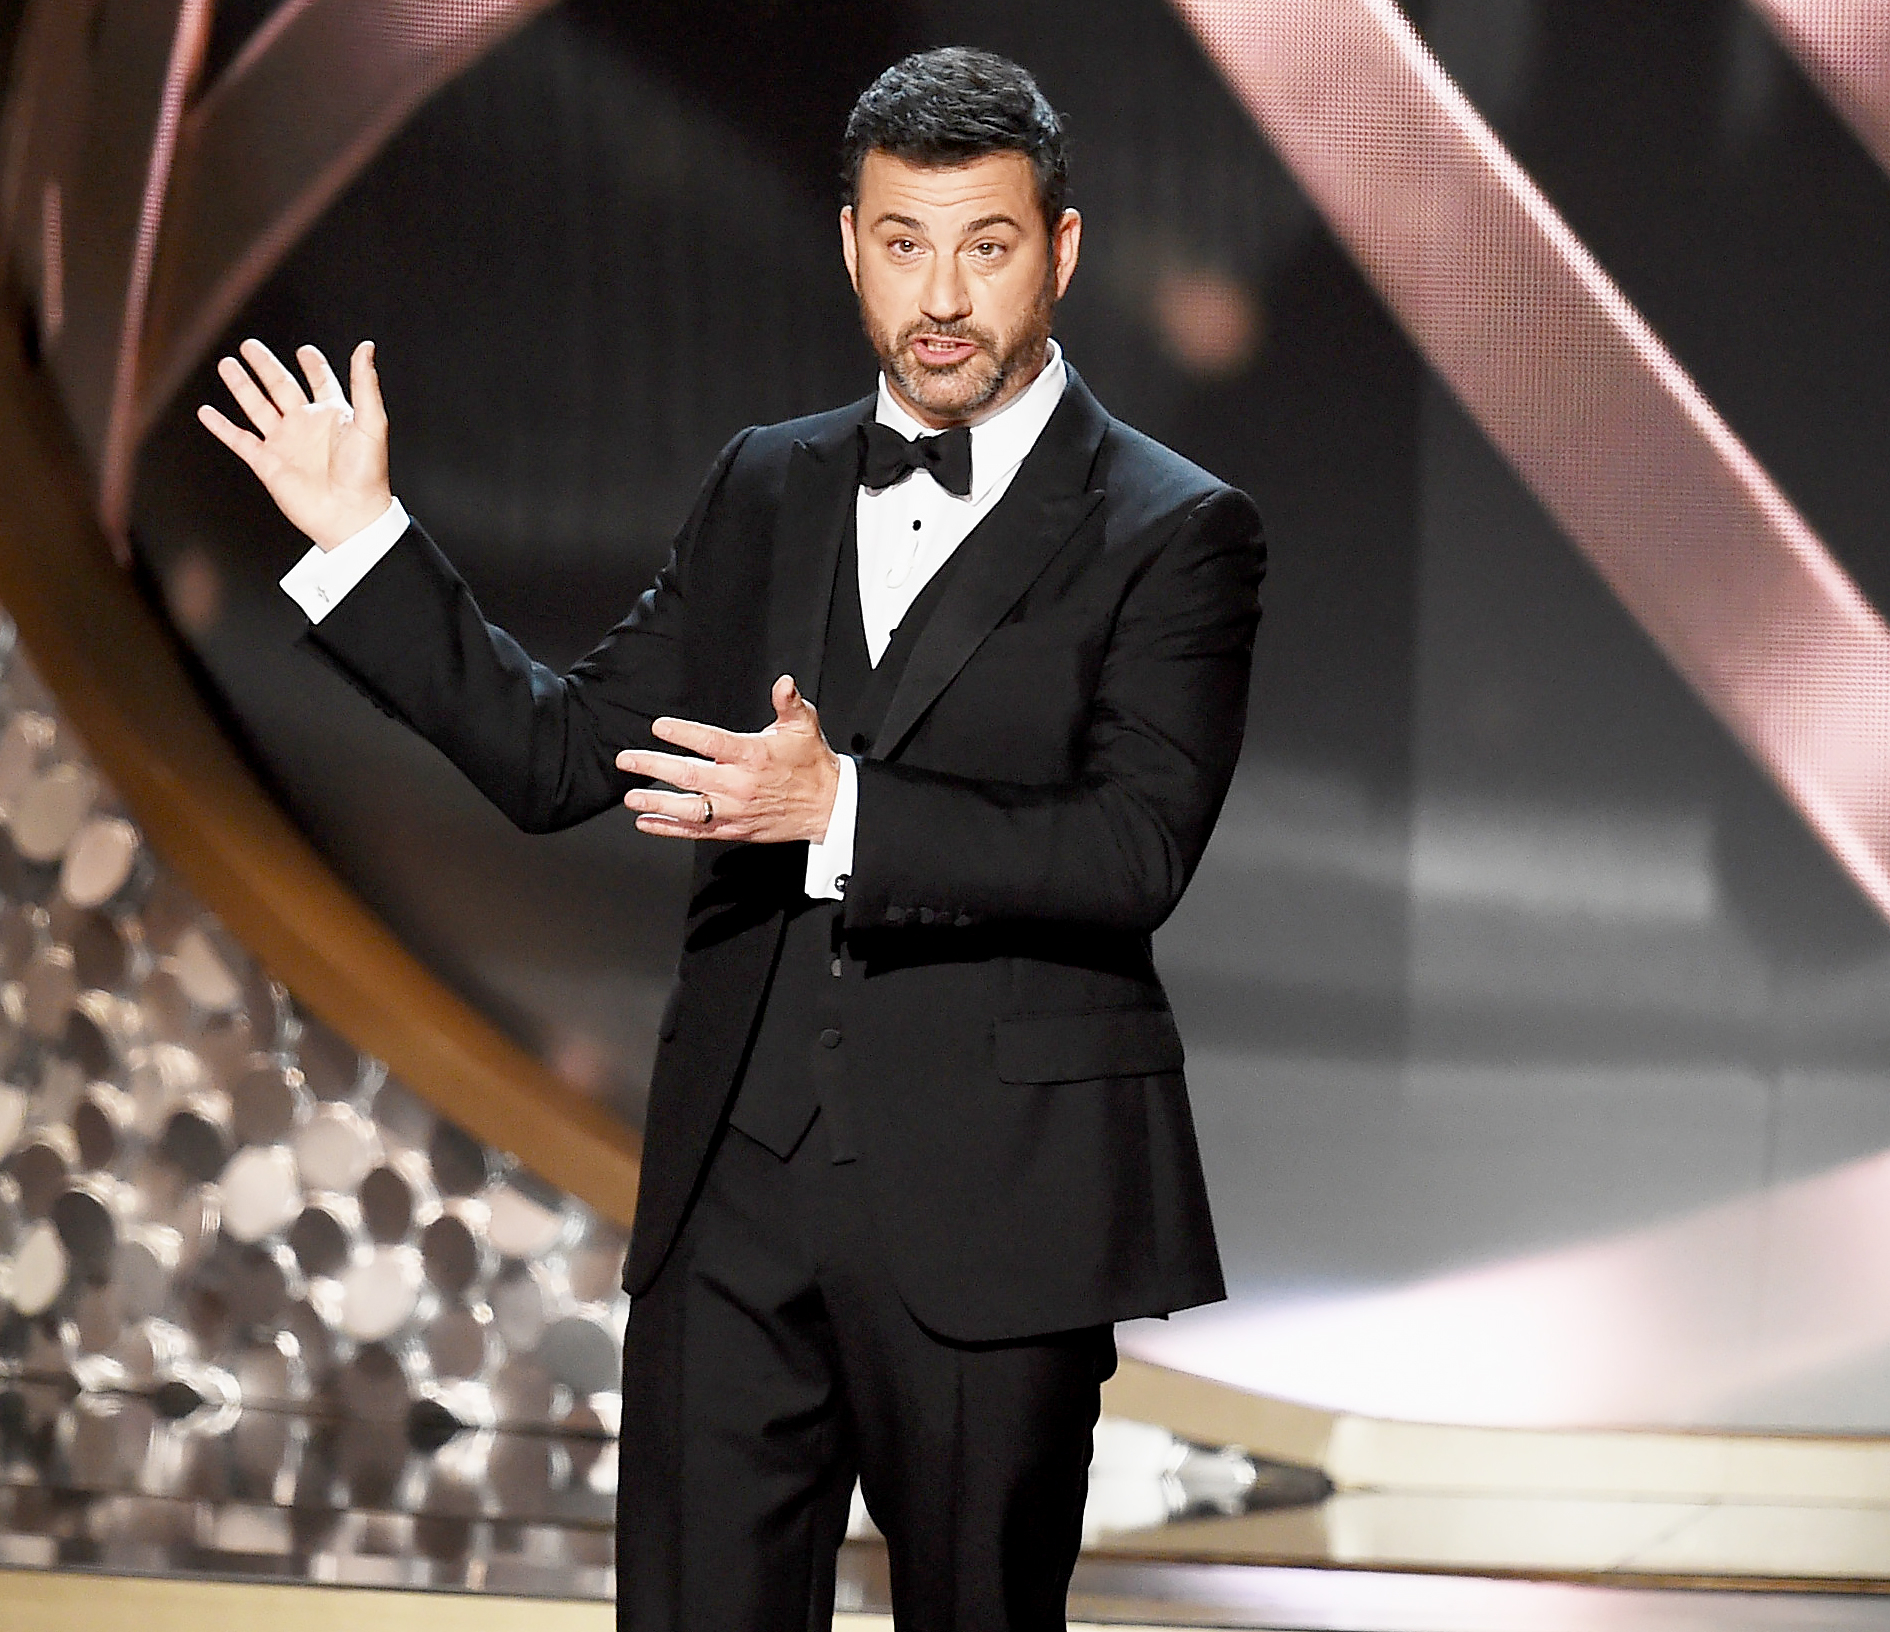 Jimmy Kimmel speaks onstage during the 68th Annual Primetime Emmy Awards.